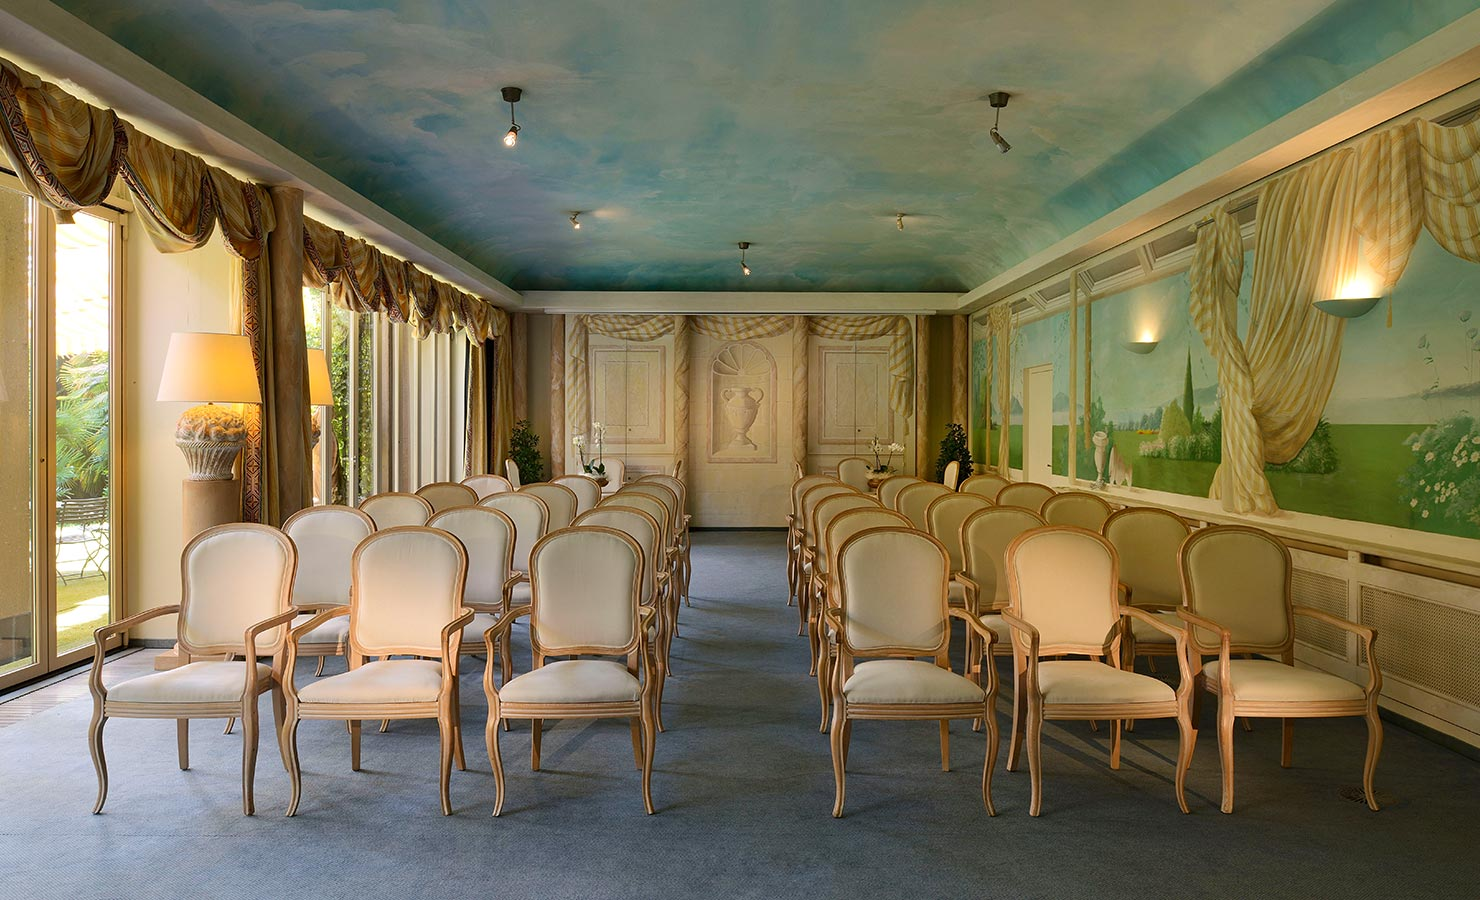 business_meetings-rooms_03.jpg